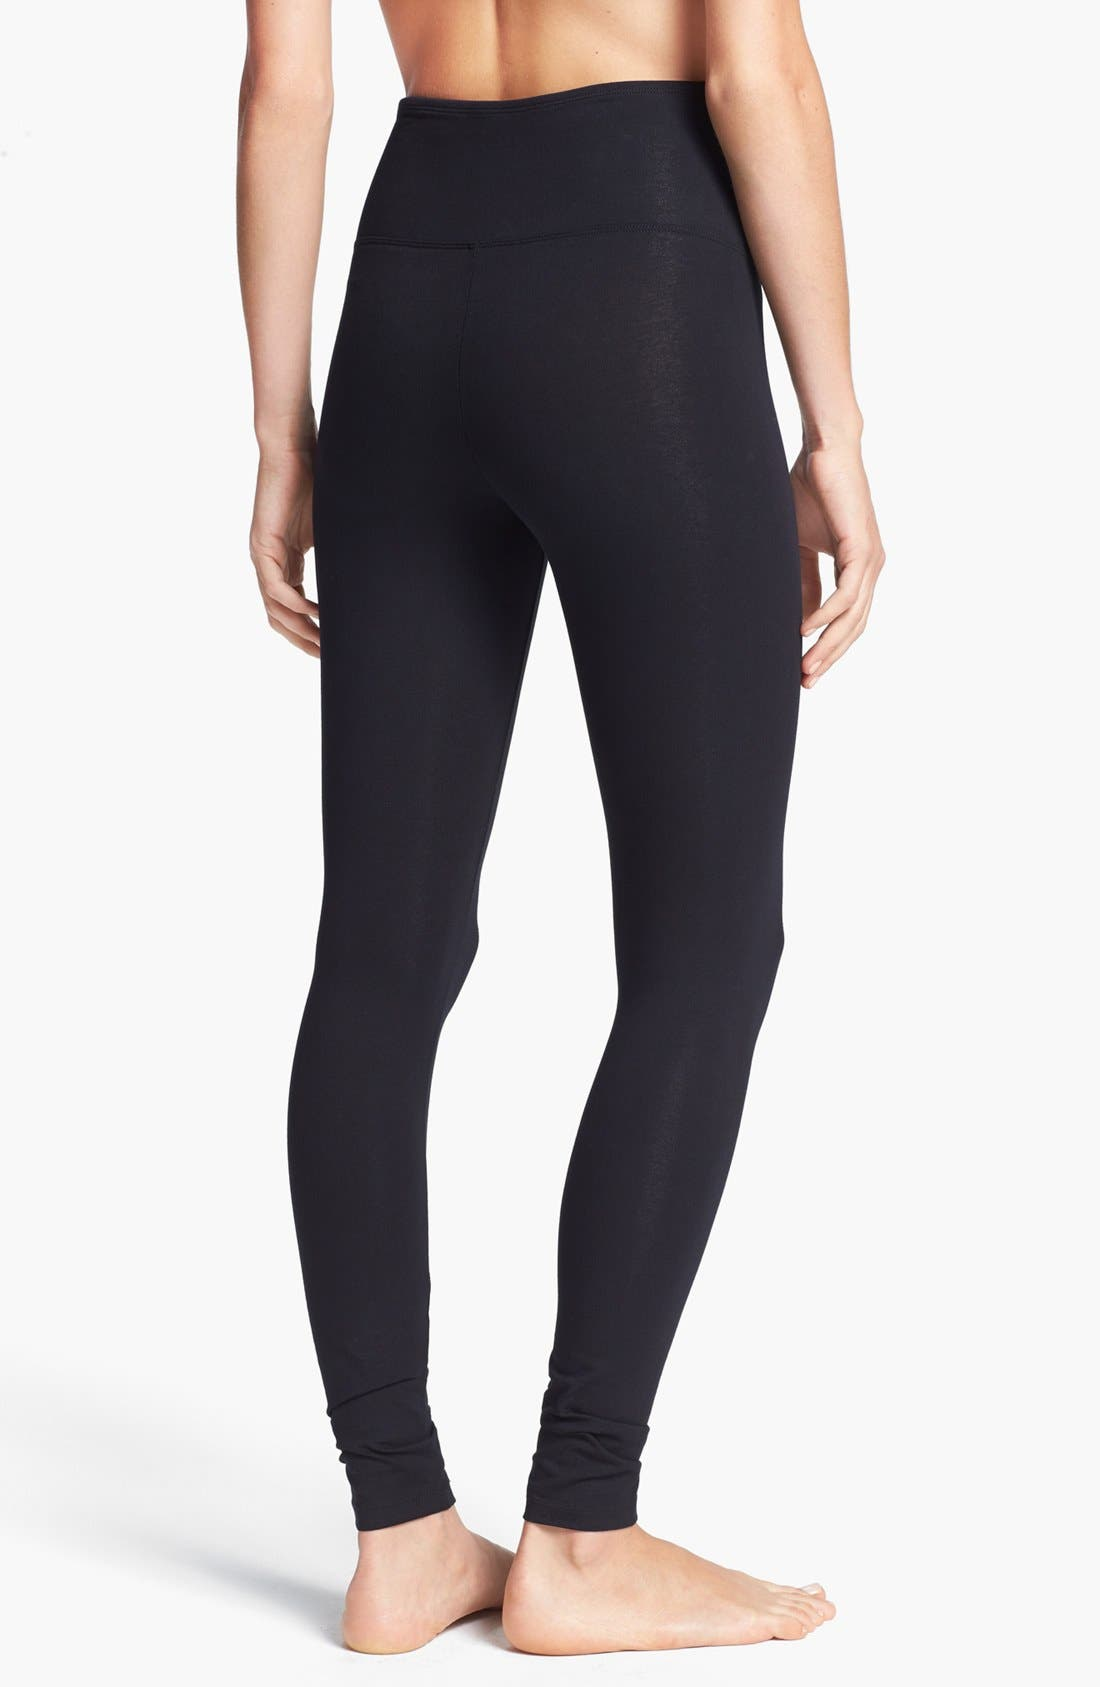 'Rachel' High Waist Leggings,                             Alternate thumbnail 3, color,                             BLACK